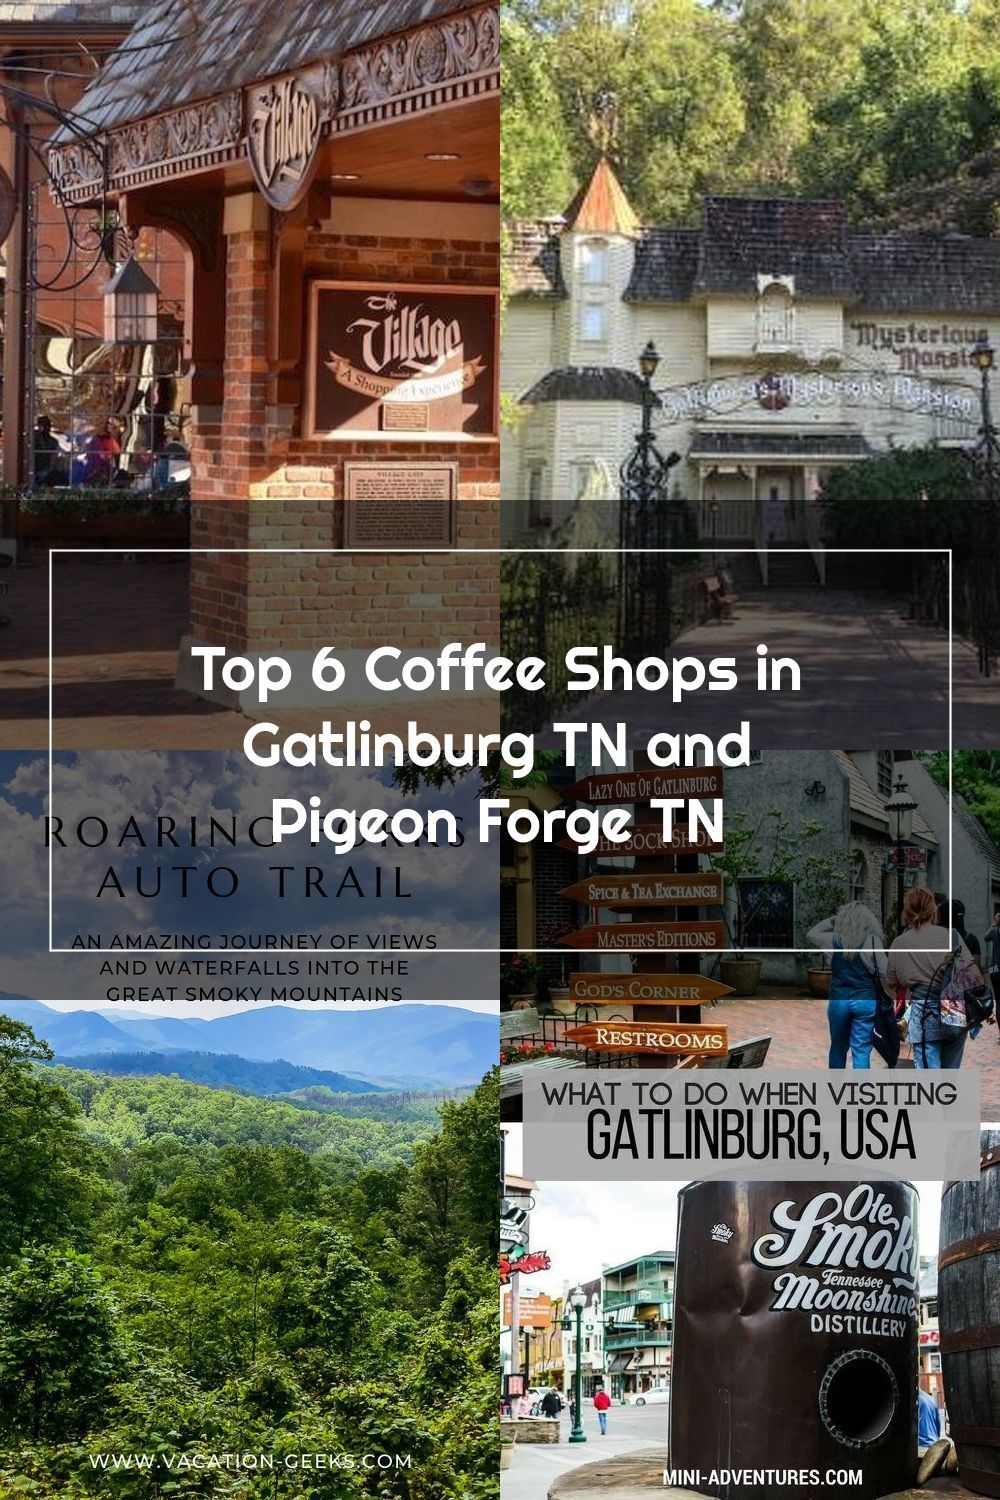 Top 6 Coffee Shops In Gatlinburg Tn And Pigeon Forge Tn In 2020 Gatlinburg Tn Gatlinburg Pigeon Forge Tn